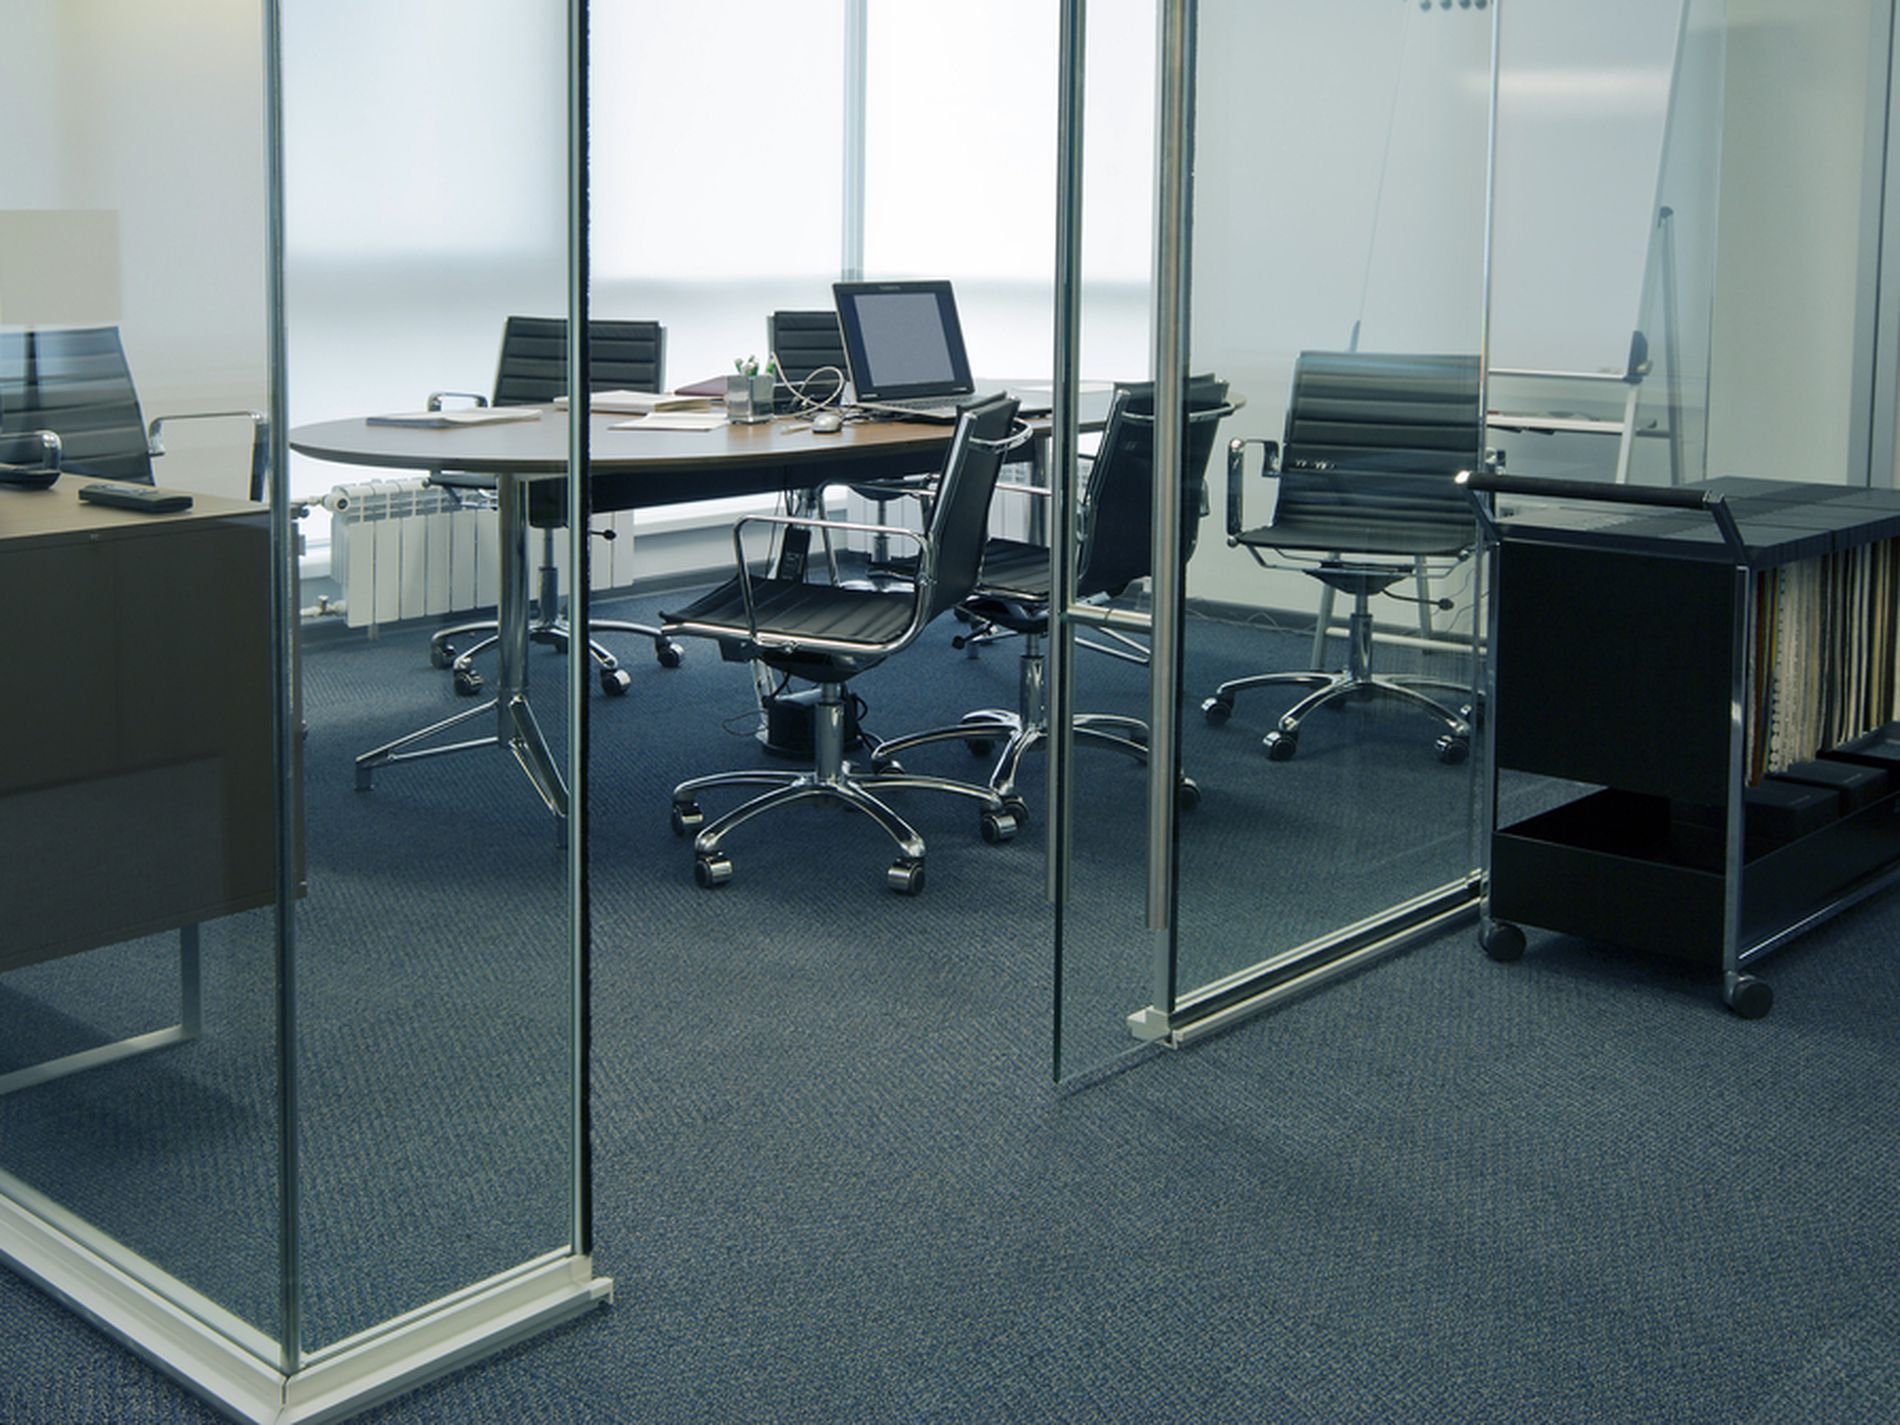 Commercial Glazing Business For Sale